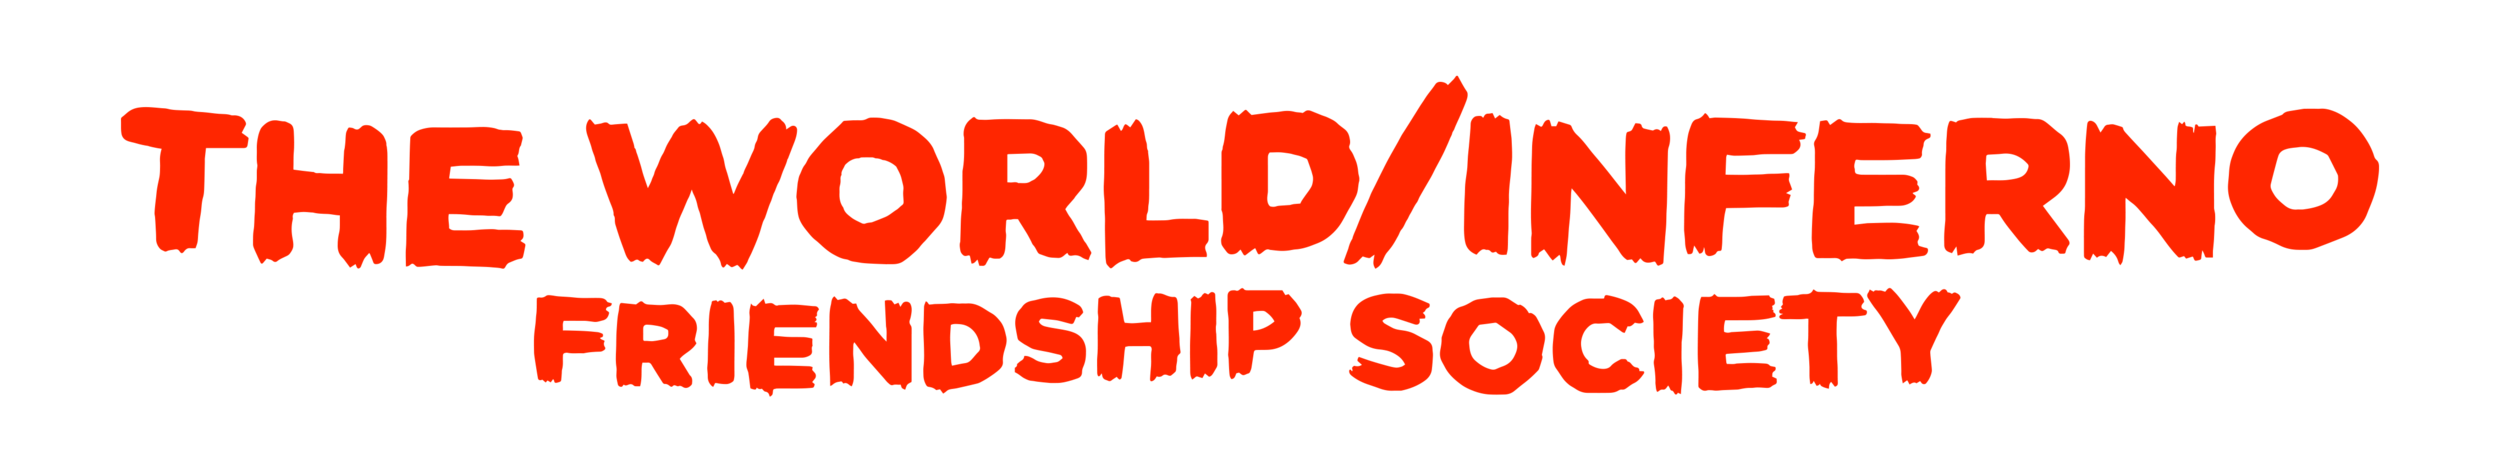 wifs-page-logo.png